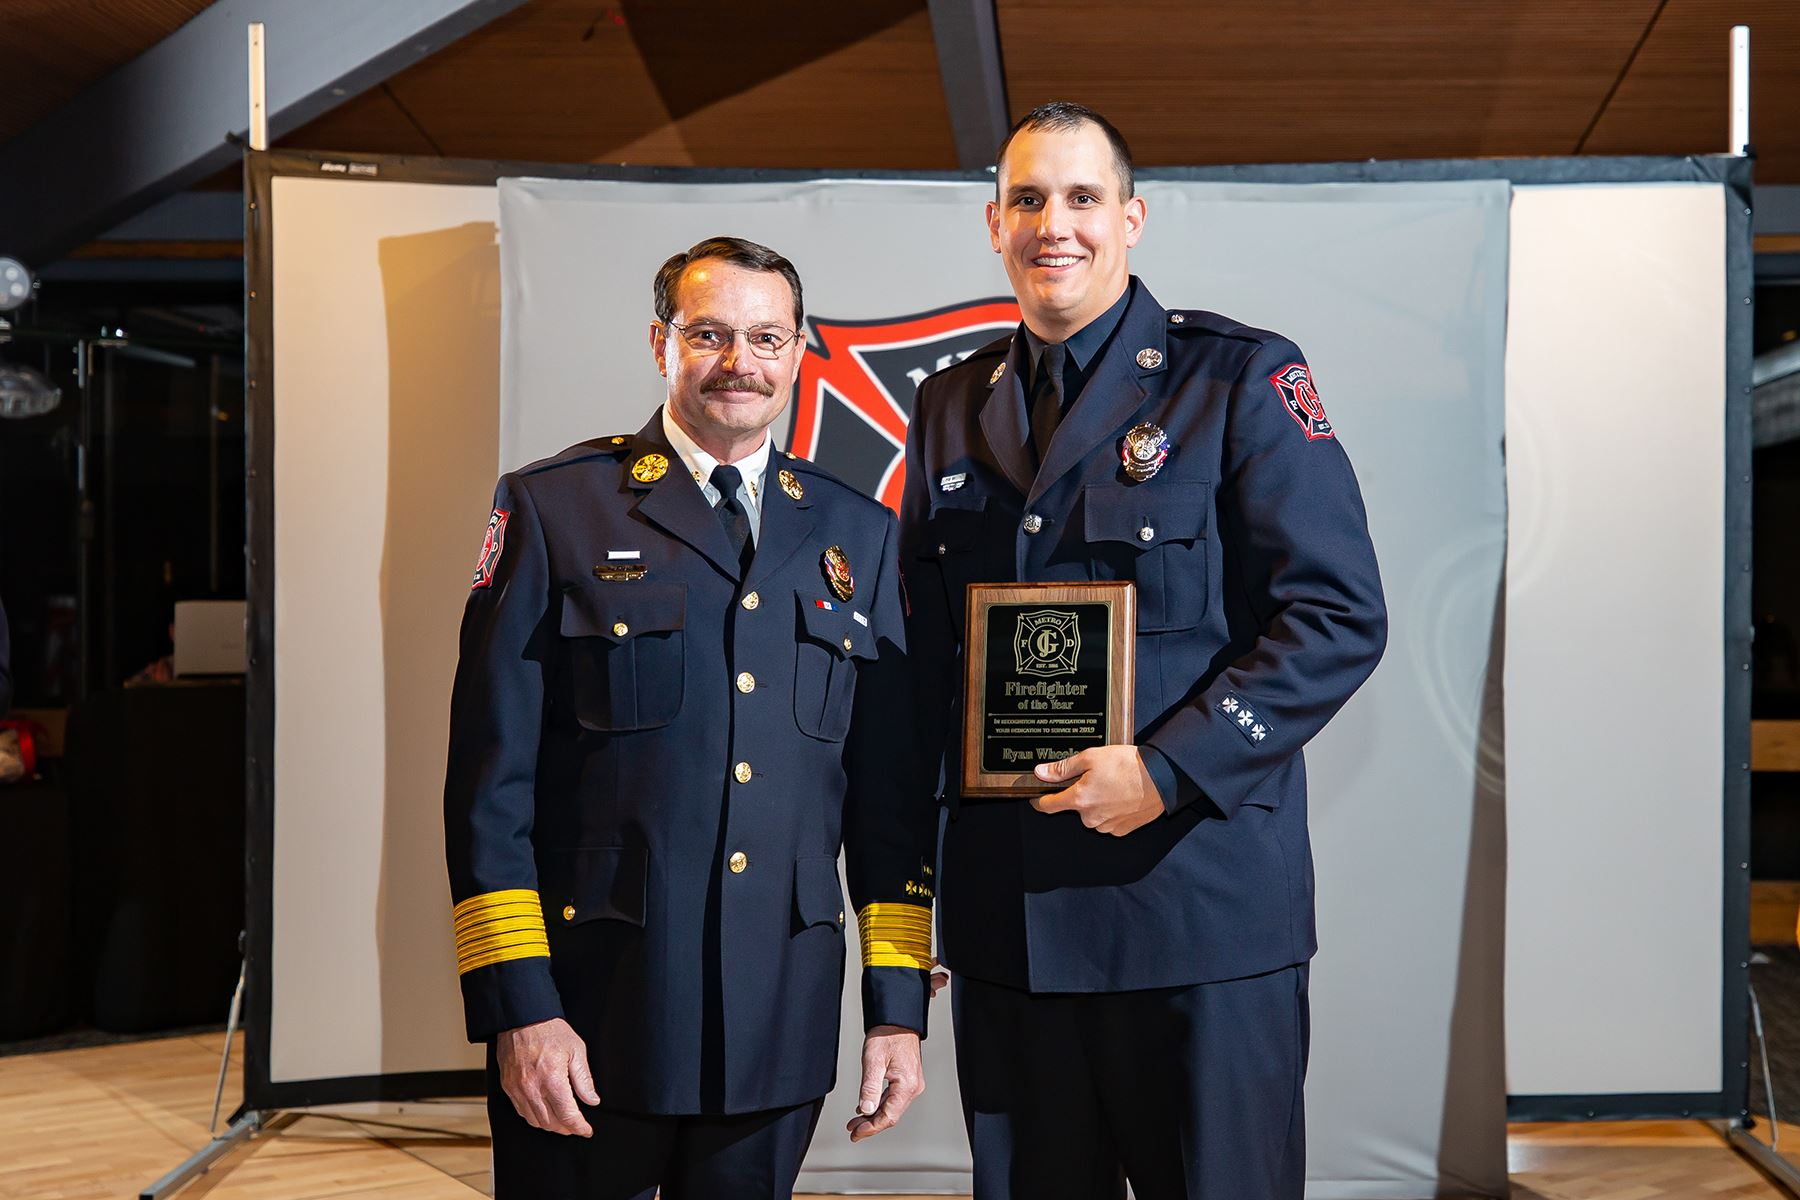 Firefighter of the Year_Chief Clark_Ryan Wheeler_3_1800x1200